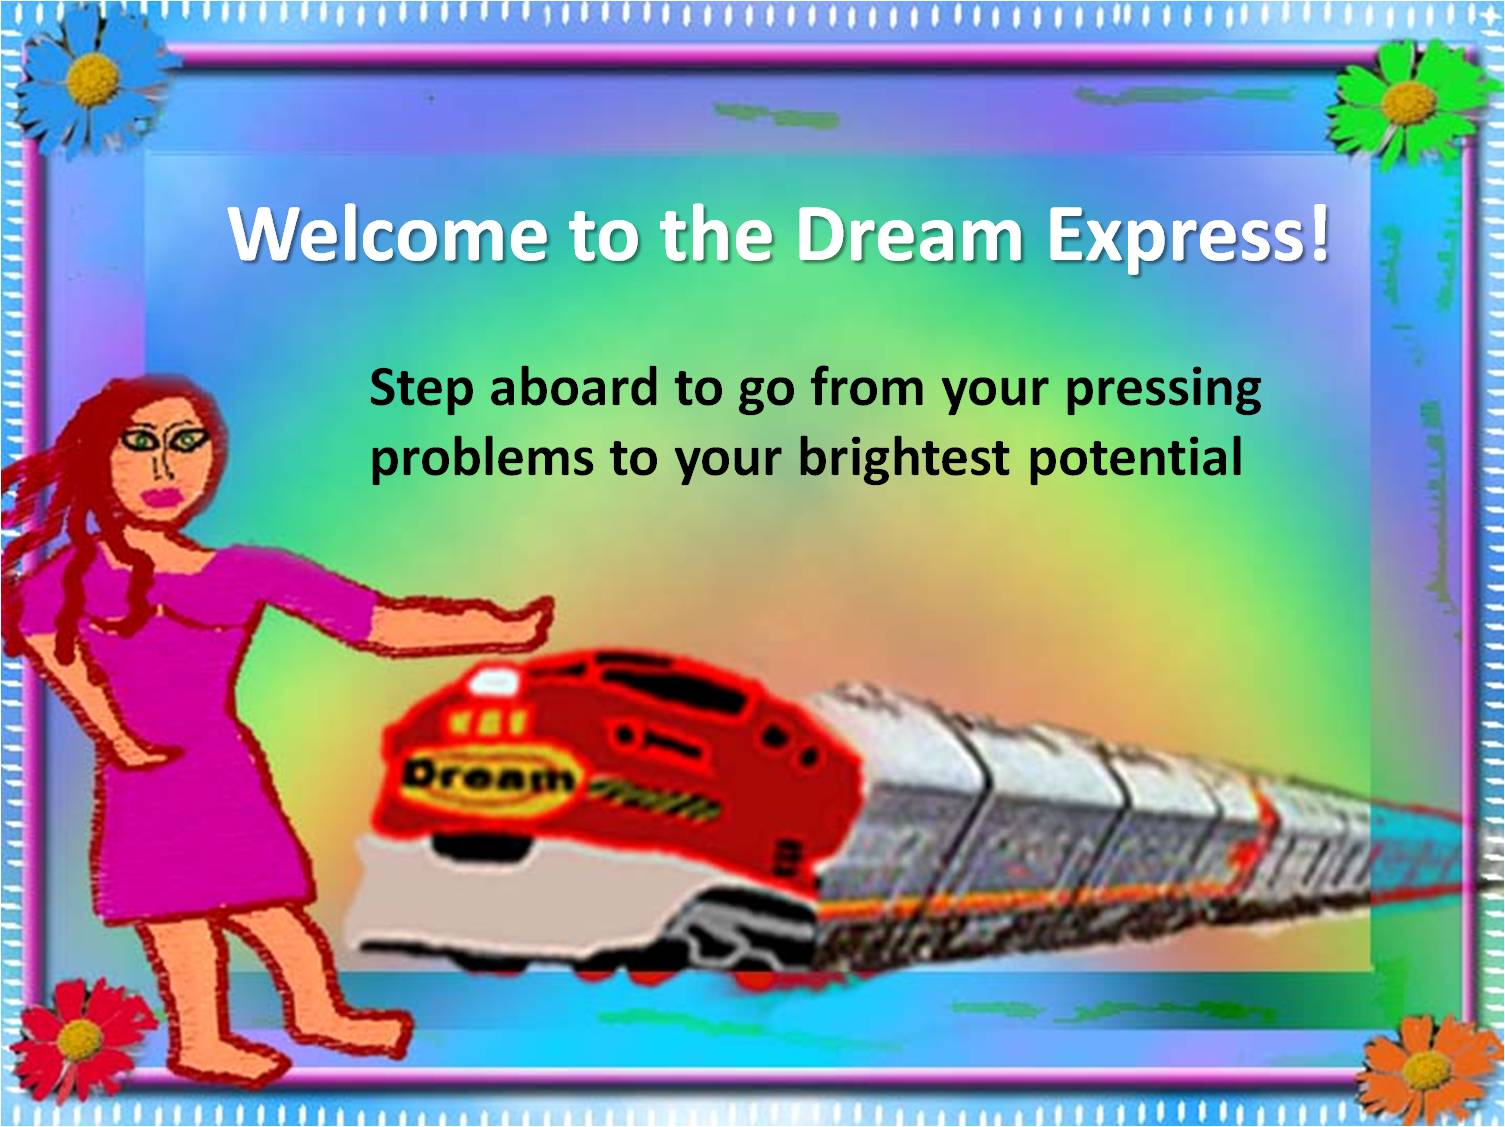 dreamexpress-virtualtourB-slide5-welcome